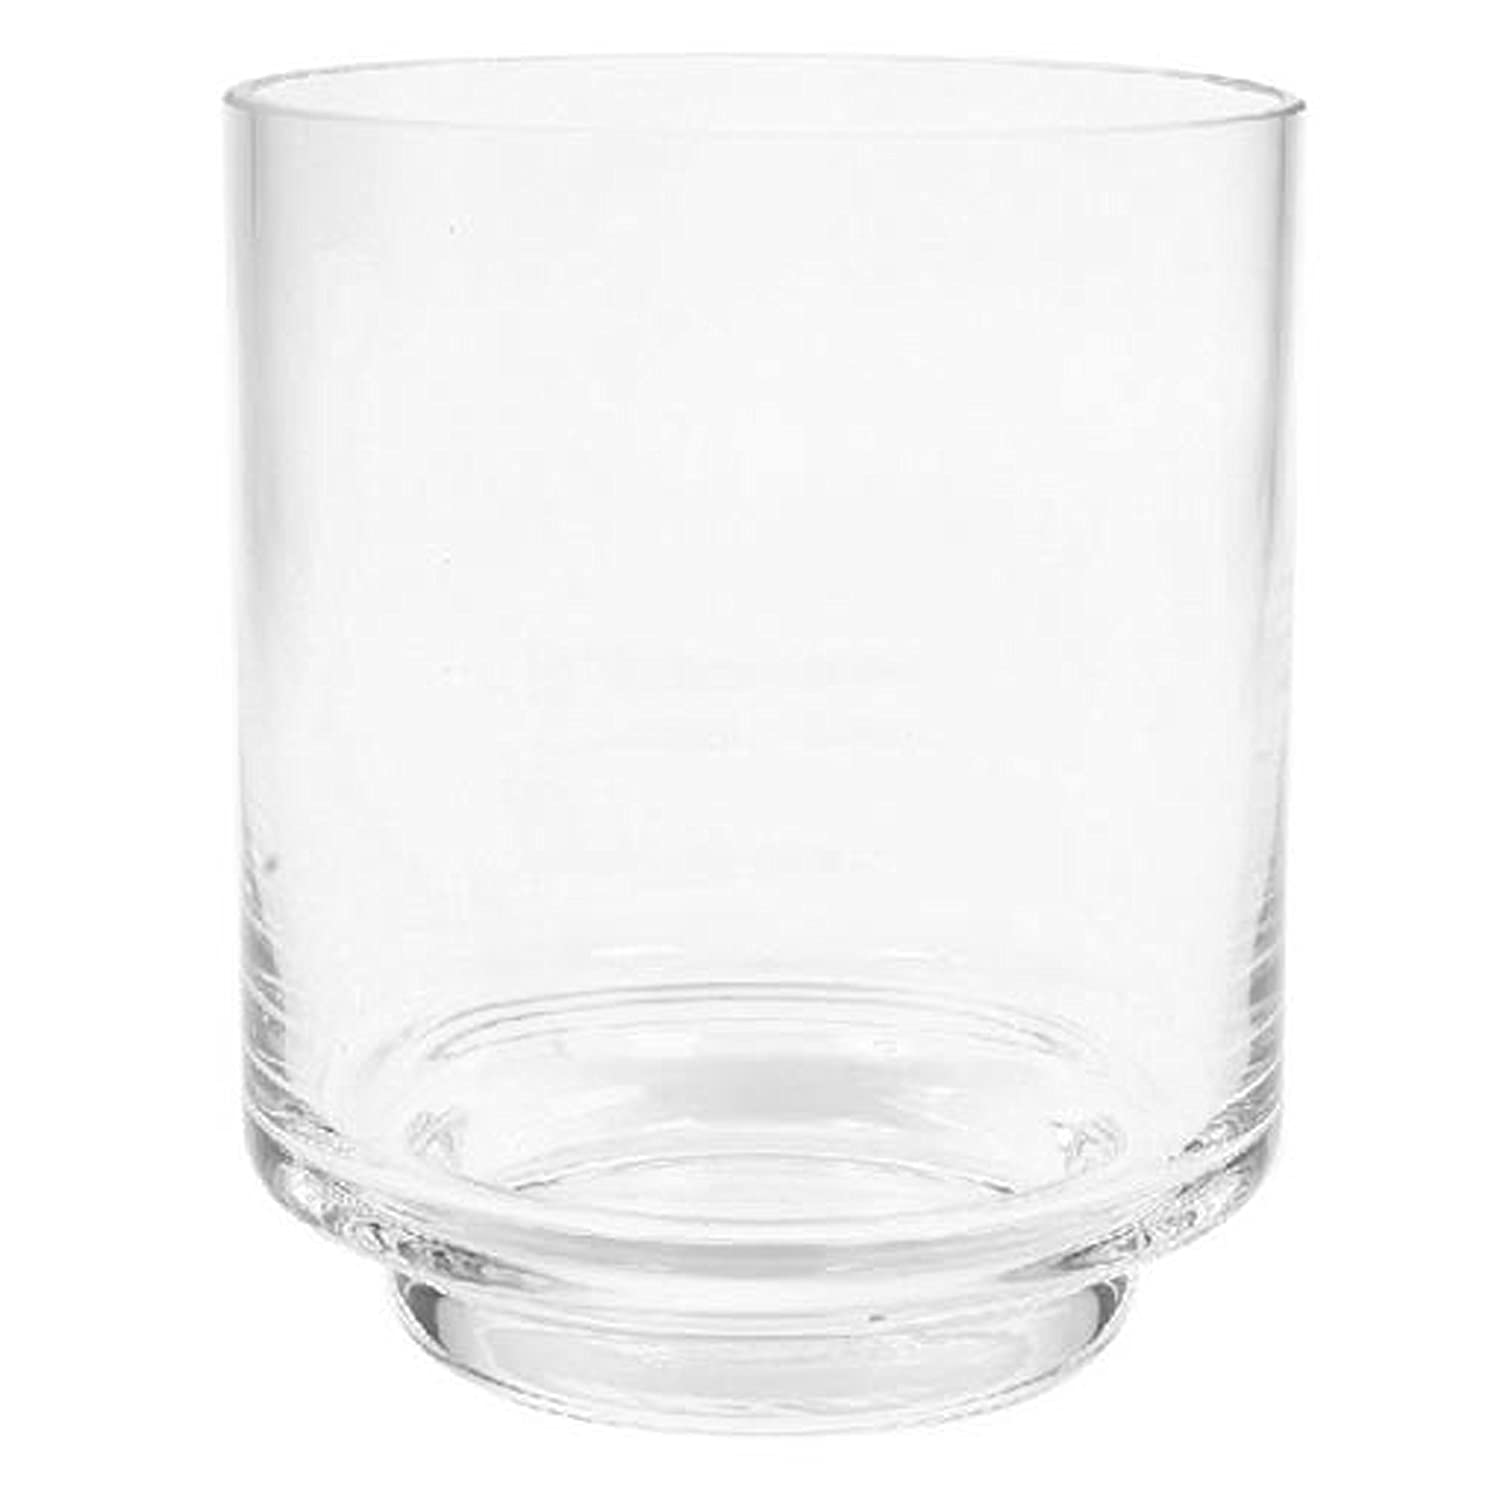 Hosley's 4.5 High, Glass Pillar/Votive Candle Holder. Ideal Gift for Weddings, House Warming, Home Office, Spa, Votive/Pillar Candle Garden. P1 Hosley' s 4.5 High HG Global